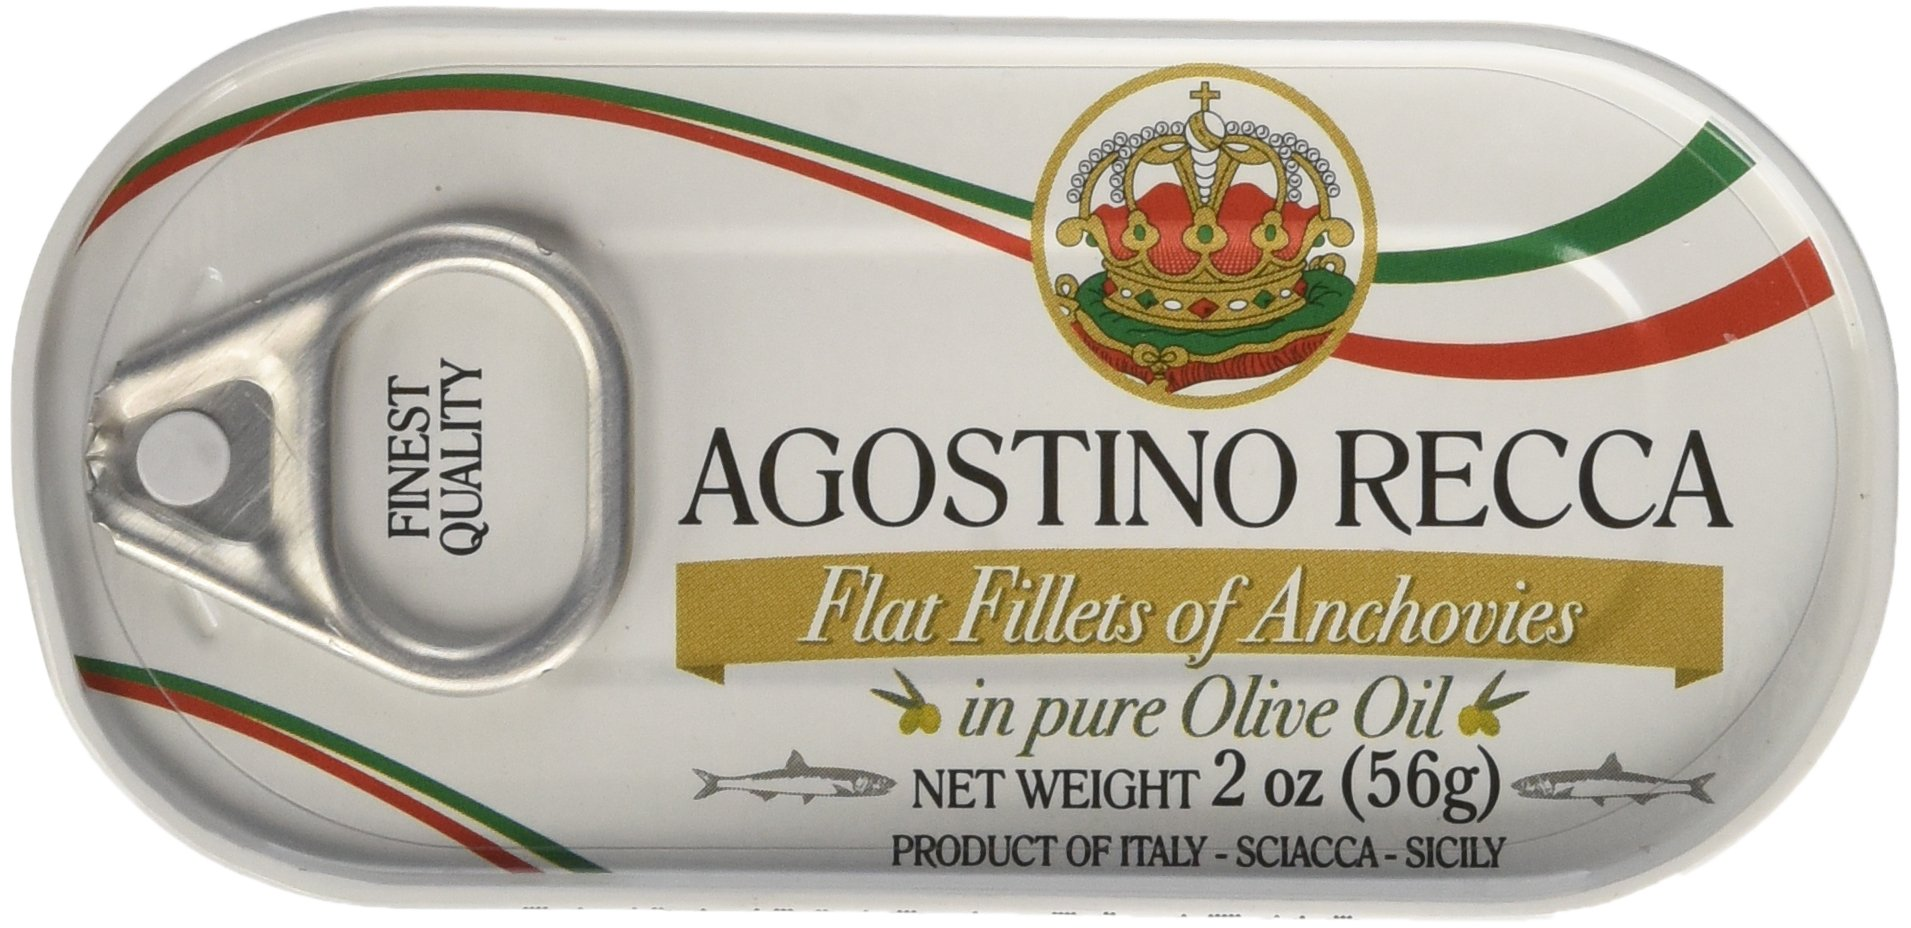 Agostino Recca - Flat Fillets of Anchovies in Olive Oil, (3)- 2 Ounce. Tins